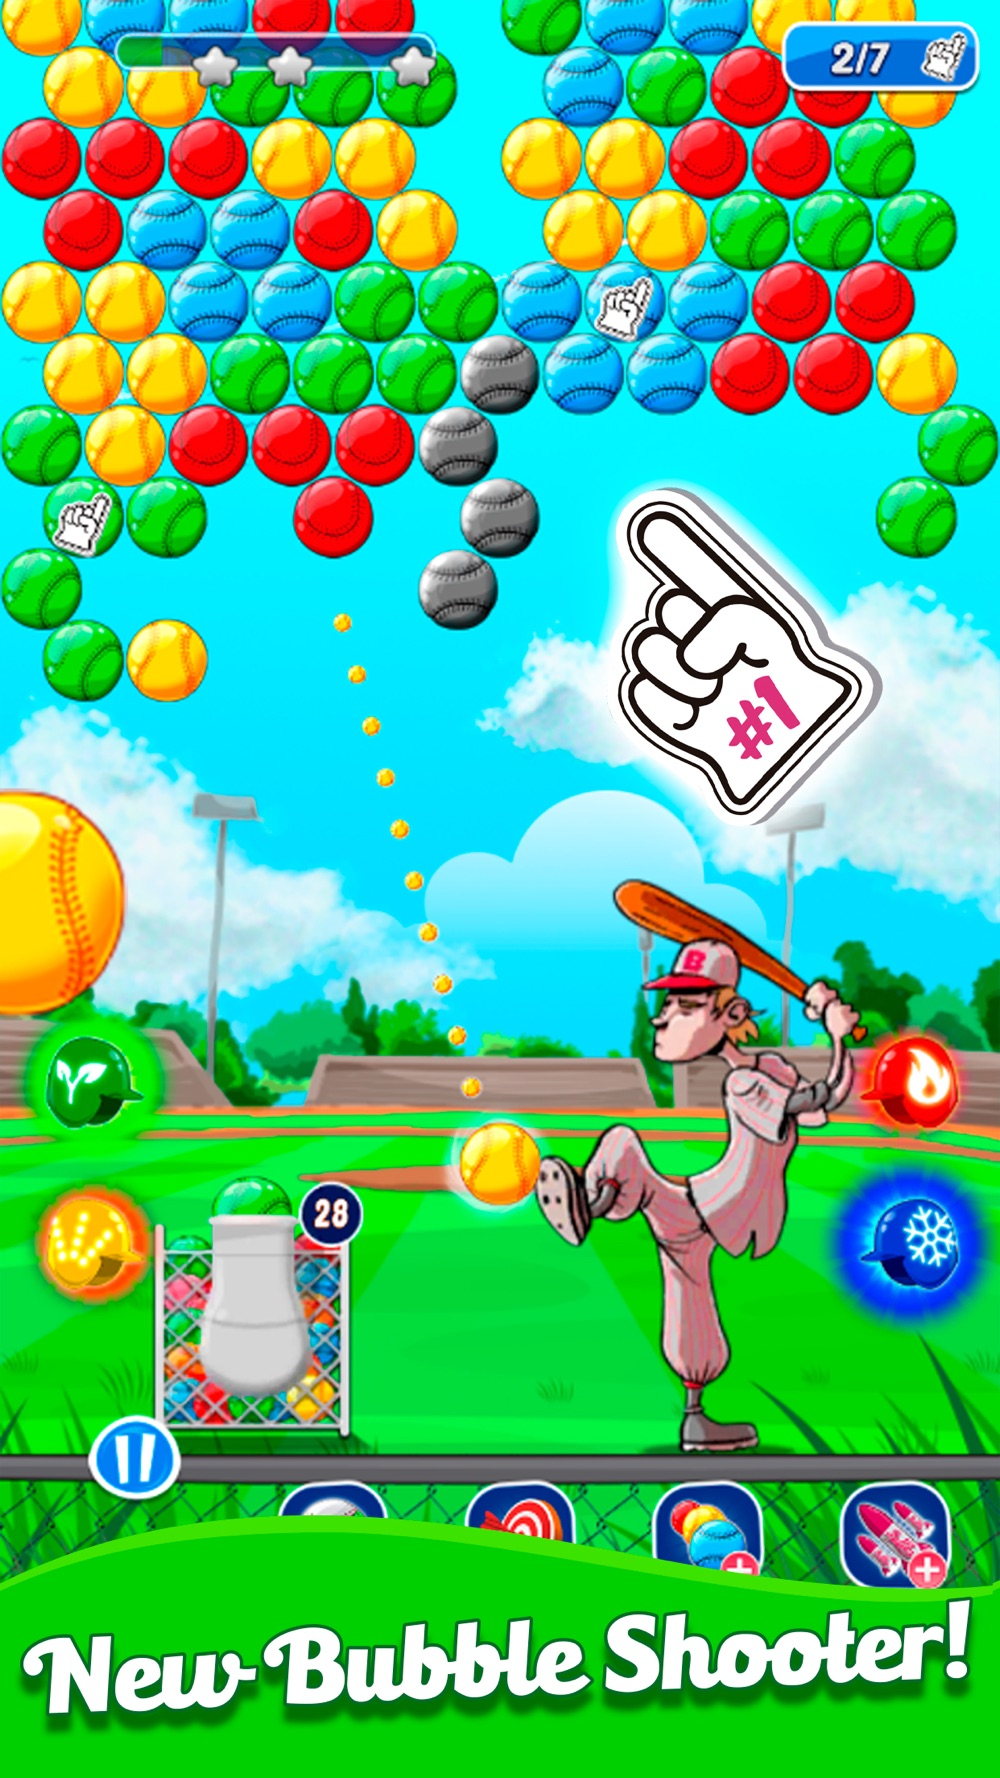 Baseball Bubble Shooter Cheat Codes